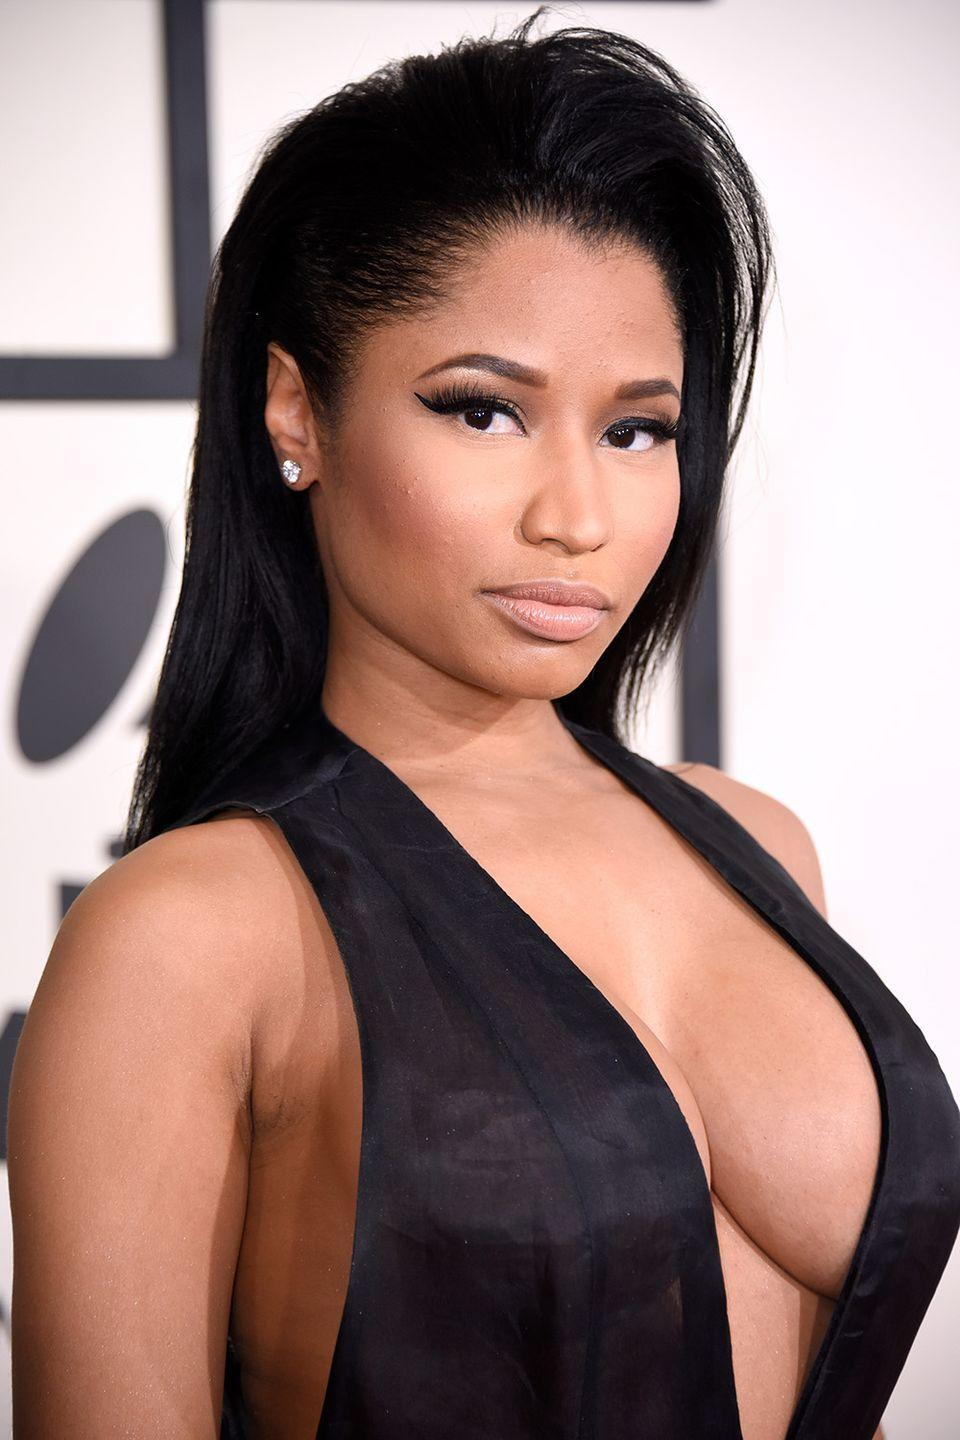 "<p><strong>Born</strong>: Onika Tanya Maraj</p><p>In a 2012 interview with <em><a href=""https://www.theguardian.com/music/2012/apr/27/nicki-minaj-bigger-balls-than-the-boys"" rel=""nofollow noopener"" target=""_blank"" data-ylk=""slk:The Guardian"" class=""link rapid-noclick-resp"">The Guardian</a></em>, the female rapper explained that she didn't even choose her stage name. ""Somebody changed my name,"" she <a href=""https://www.theguardian.com/music/2012/apr/27/nicki-minaj-bigger-balls-than-the-boys"" rel=""nofollow noopener"" target=""_blank"" data-ylk=""slk:told"" class=""link rapid-noclick-resp"">told</a> the publication. ""One of the first production deals I signed, the guy wanted my name to be Minaj and I fought him tooth and nail. But he convinced me. I've always hated it."" But around close family, the rapper added, she prefers to be called by her given name, Onika. ""My rule is, whatever you were calling me four years ago is what you should be calling me now, because I don't like it when my family or close friends call me Nicki Minaj,"" she <a href=""https://www.theguardian.com/music/2012/apr/27/nicki-minaj-bigger-balls-than-the-boys"" rel=""nofollow noopener"" target=""_blank"" data-ylk=""slk:explained"" class=""link rapid-noclick-resp"">explained</a>. ""To me I'm not Nicki Minaj when I'm with them.""</p>"